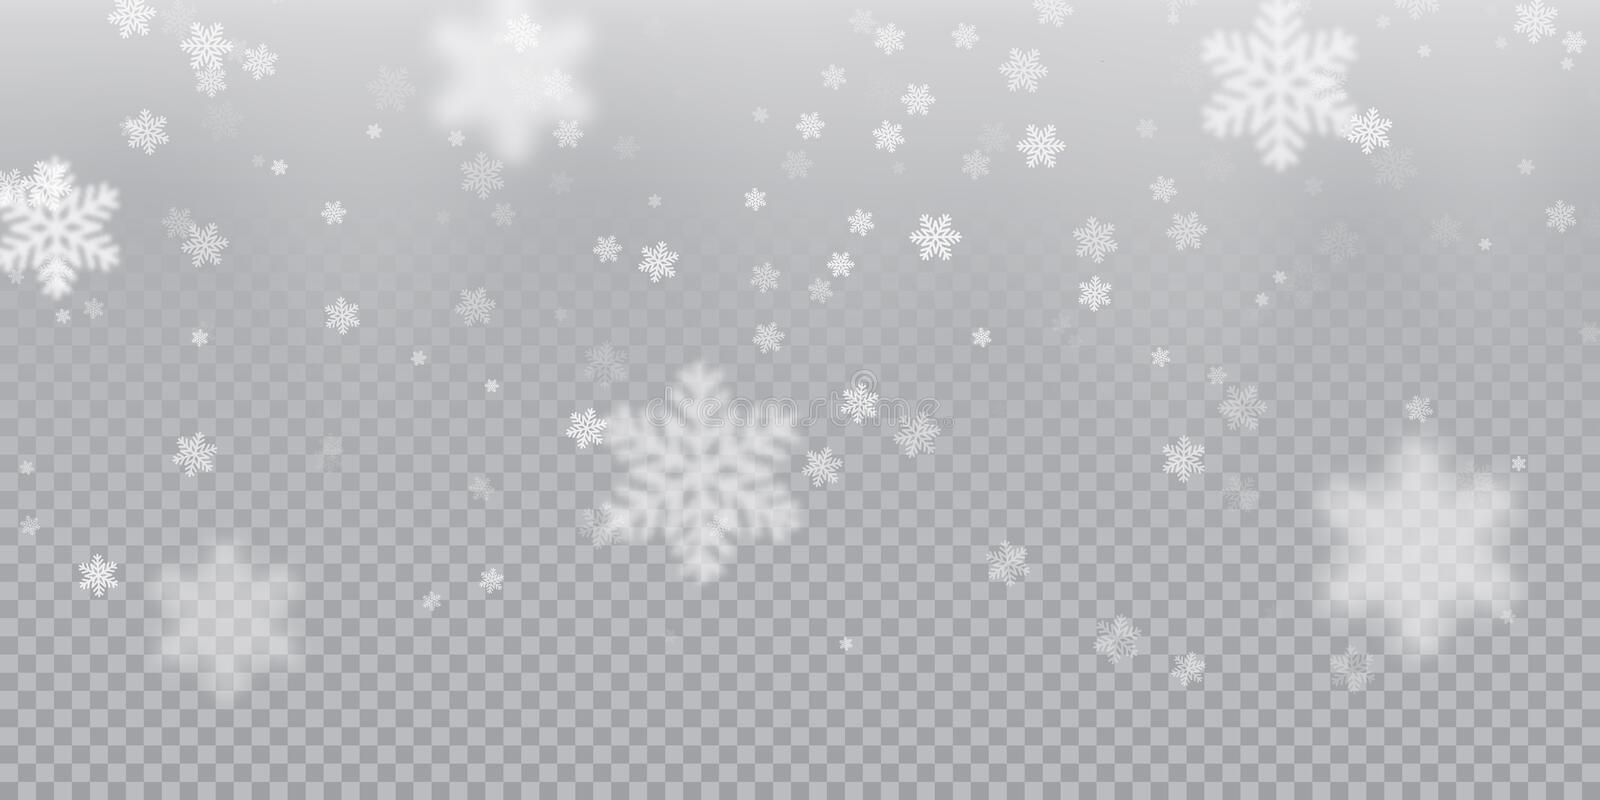 Falling snowflake pattern background of white cold snowfall overlay texture isolated on transparent background. Winter Xmas snow f. Lake ice elements template vector illustration